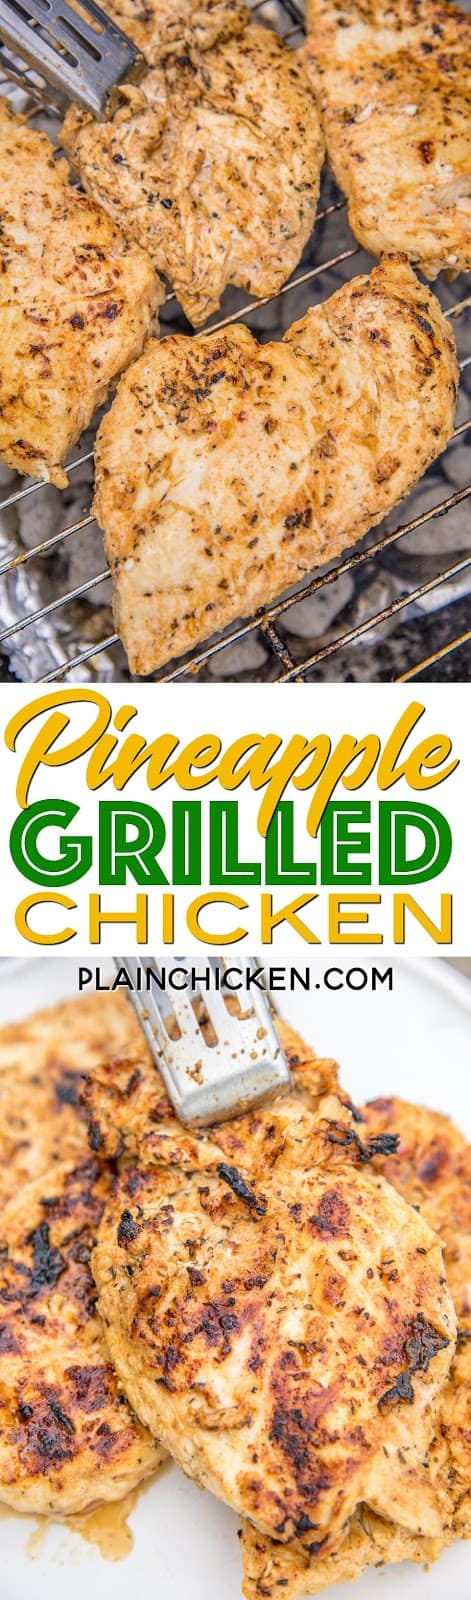 Pineapple Grilled Chicken - seriously THE BEST grilled chicken breast recipe! Chicken marinated overnight in vegetable oil, pineapple juice, salt, paprika, basil, onion powder, thyme and garlic. This chicken is so tender and juicy. Tastes great leftover too!! We always double the recipe! Everyone asks for the recipe! SO YUM! LOVE this easy grilled chicken breast recipe! #grilledchicken #chickenrecipe #grilling